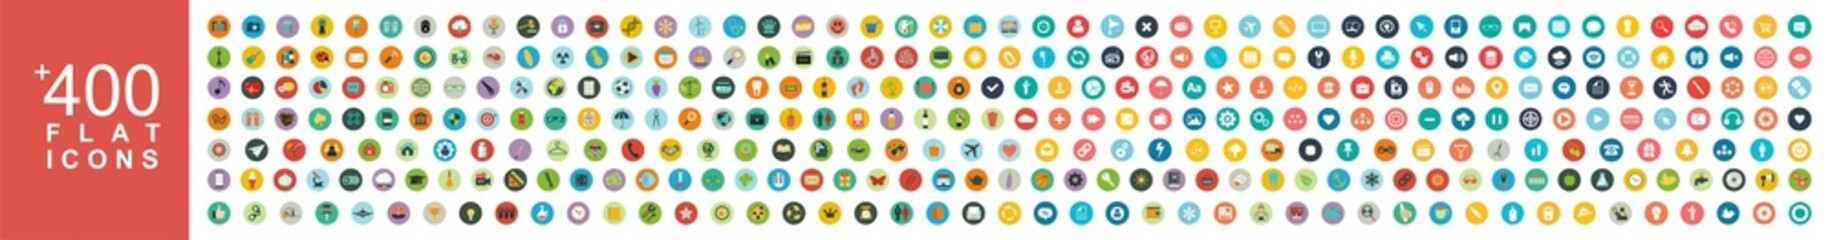 Set of 400 Minimal colorful icon vector. Fototapete